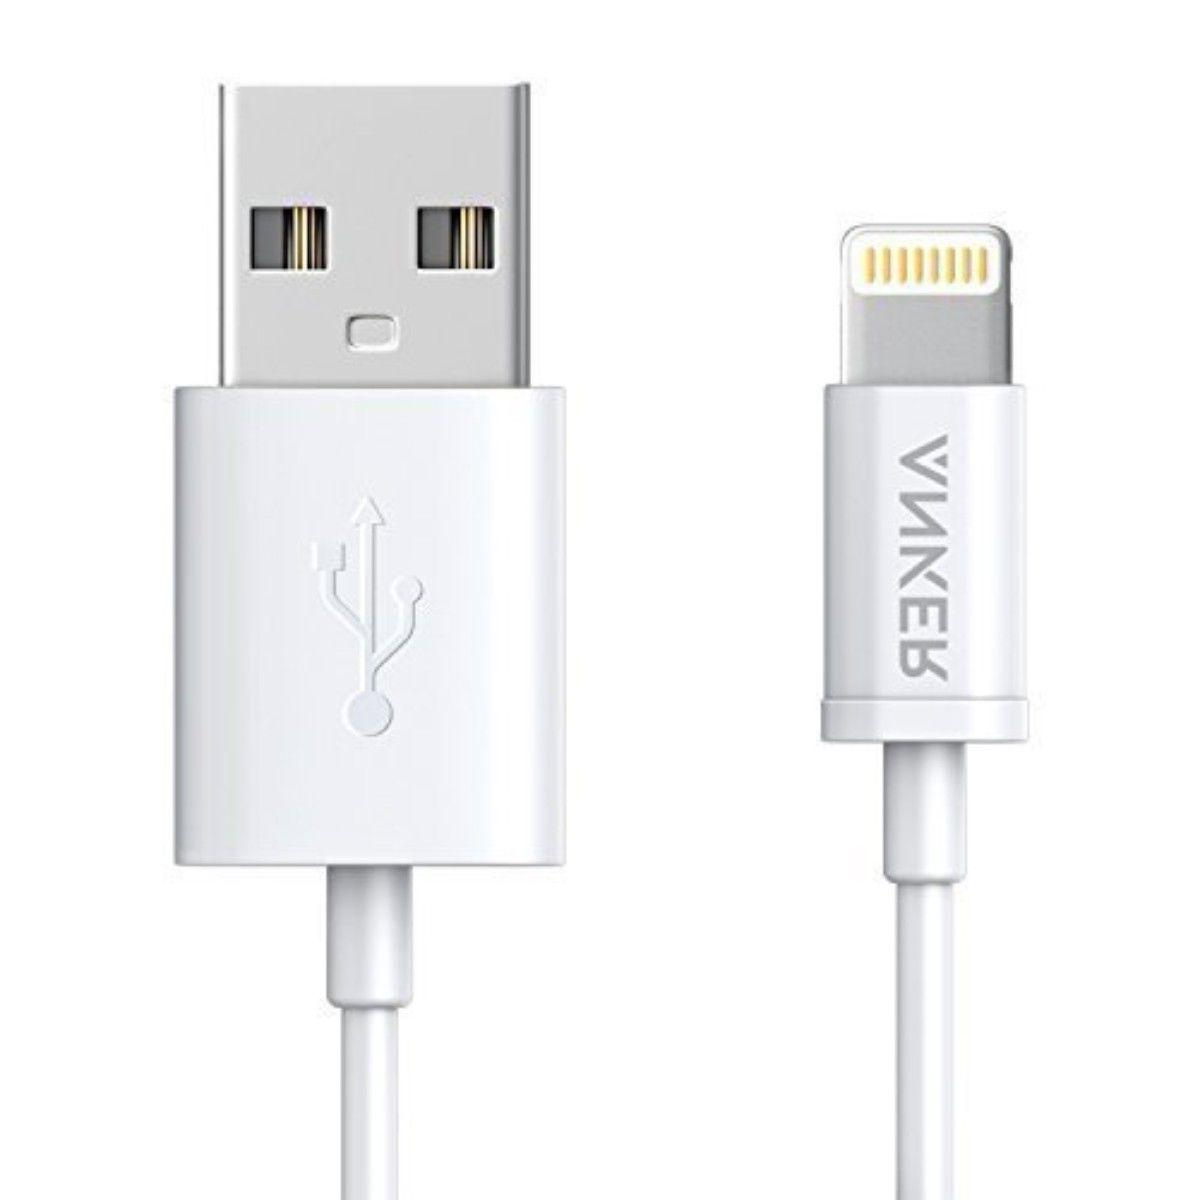 Anker Cable iPhone X USB Charger Lightning Mfi Powerline Cer